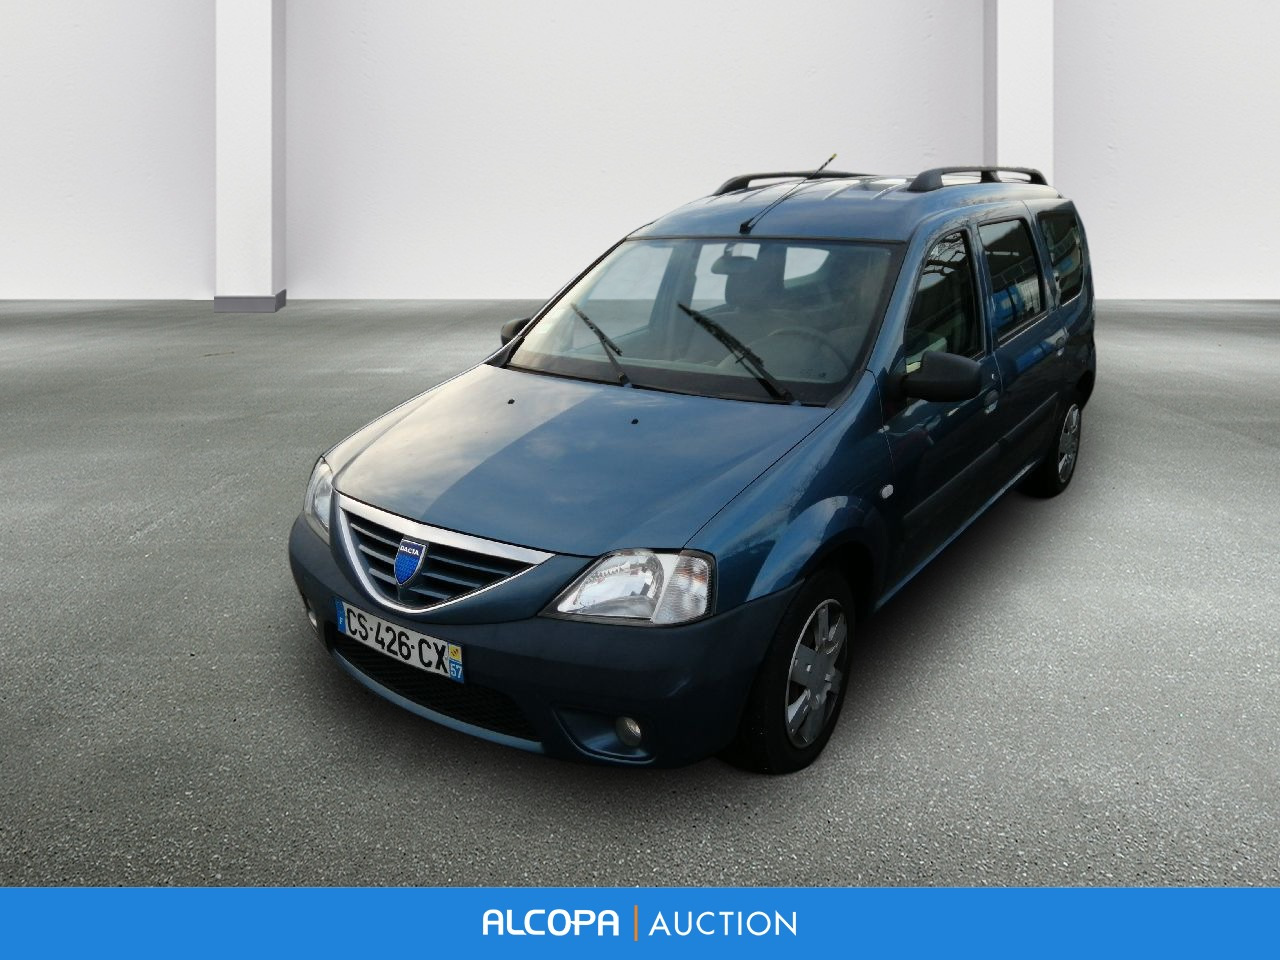 dacia logan mcv logan mcv 1 5 dci 70 7 places ambiance alcopa auction. Black Bedroom Furniture Sets. Home Design Ideas